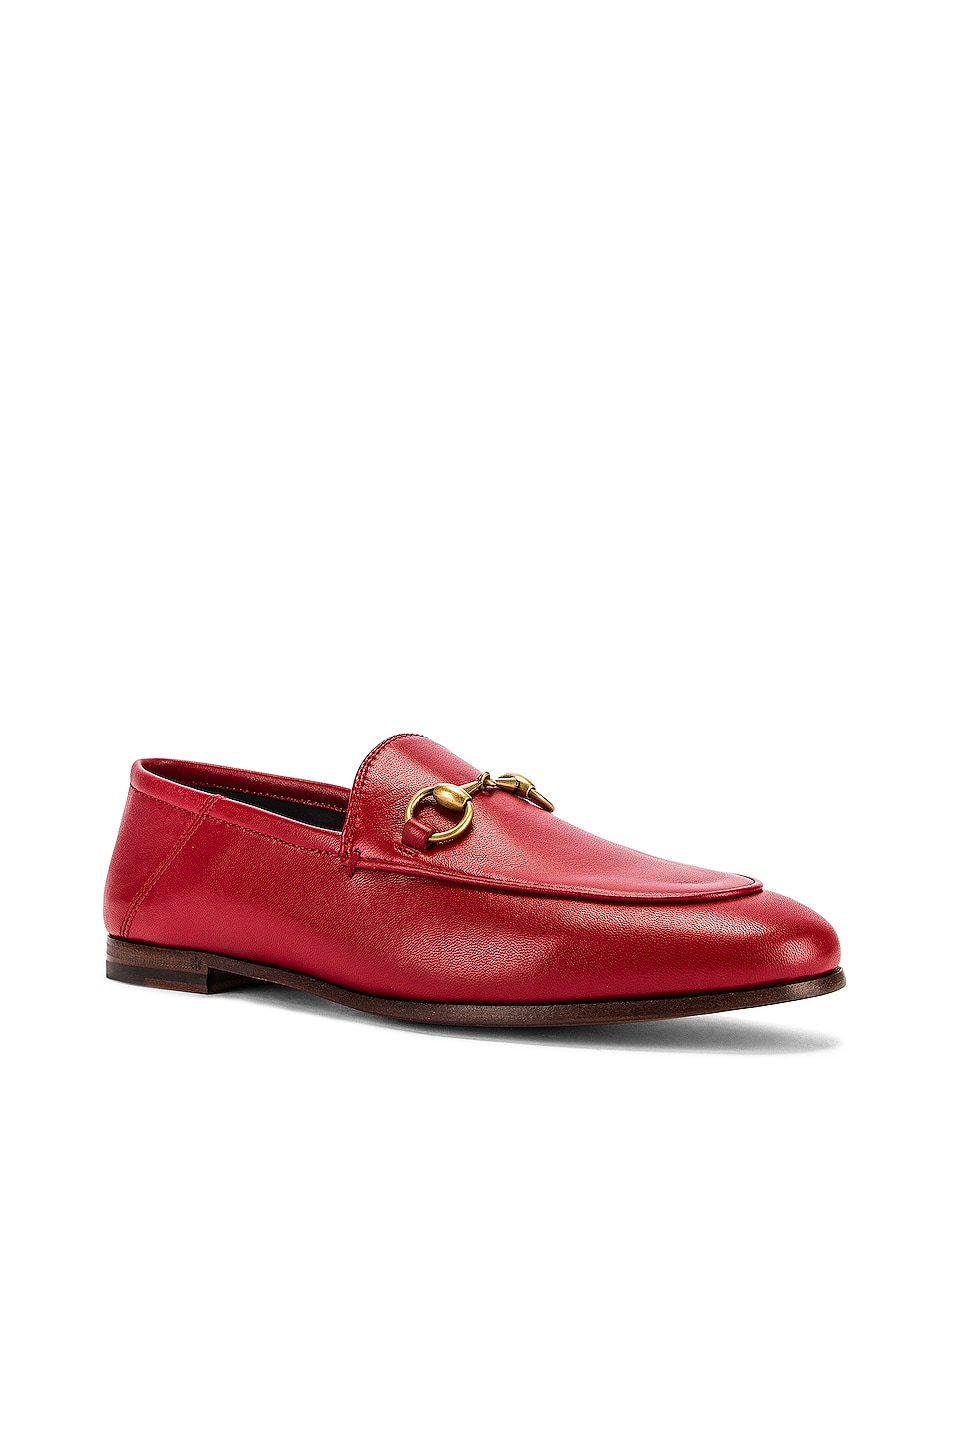 Image 3 of Gucci Leather Horsebit Loafers in Hibiscus Red